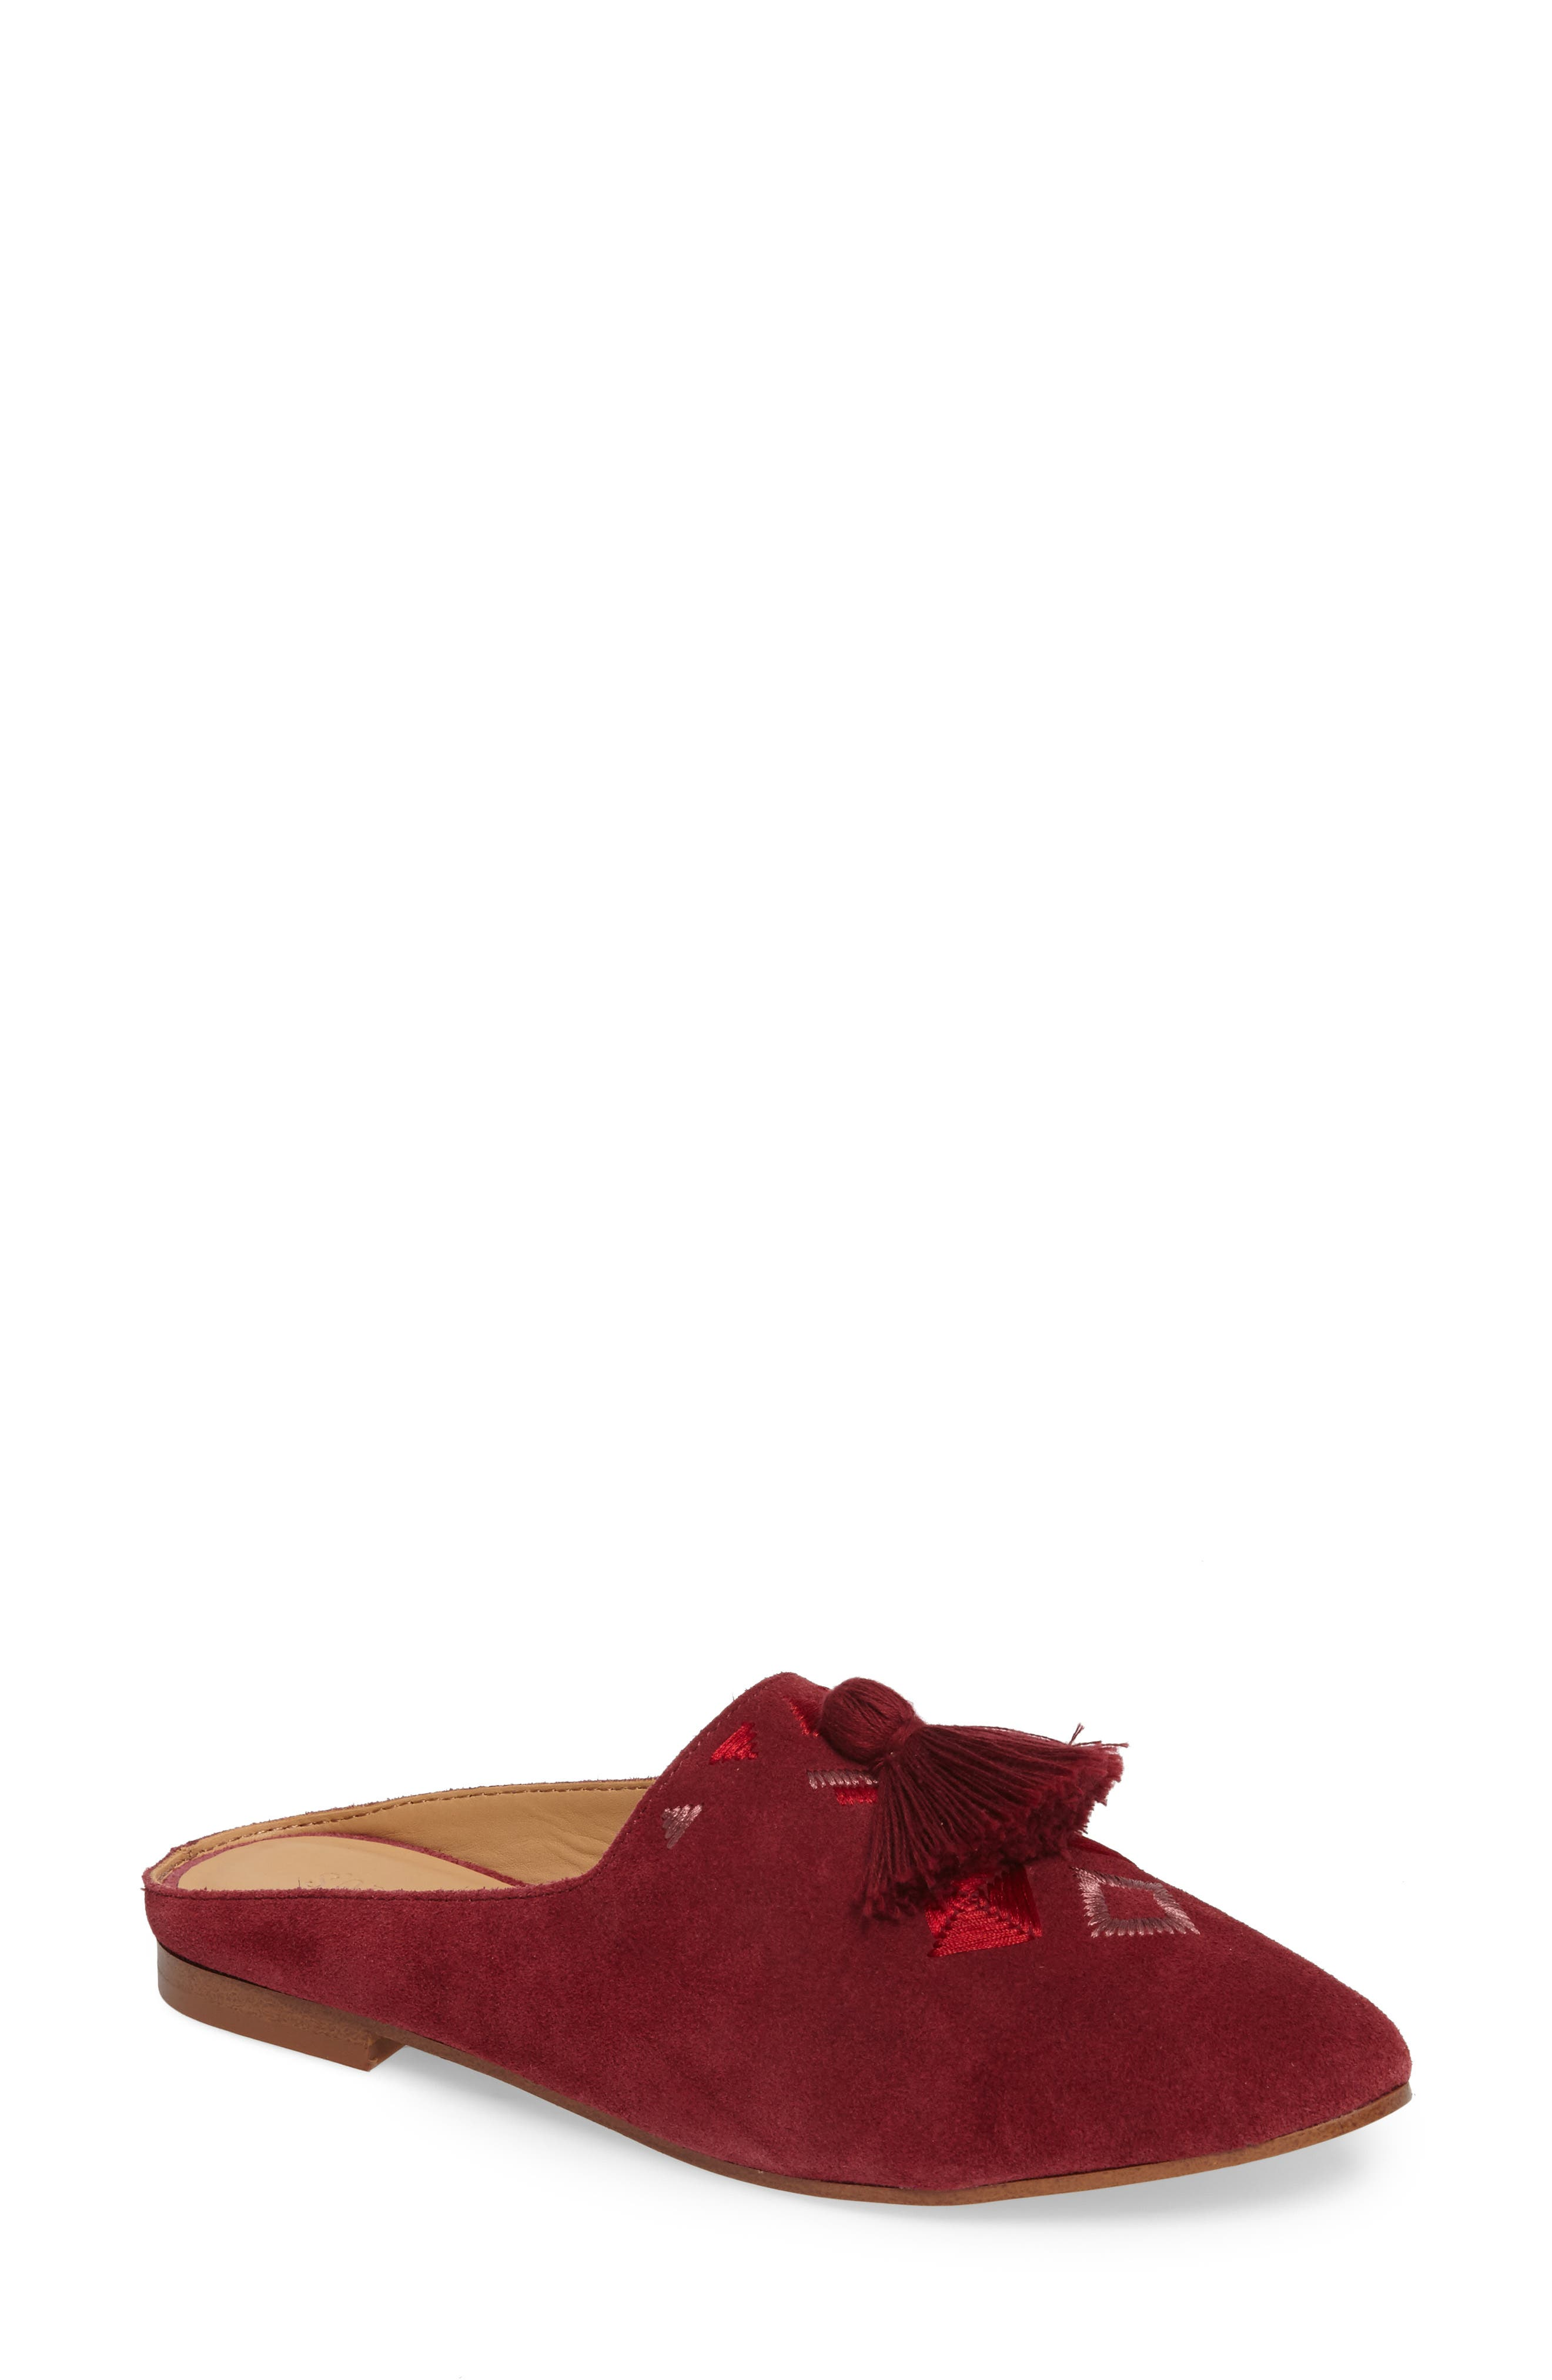 Soludos Palazzo Loafer Mule (Women)